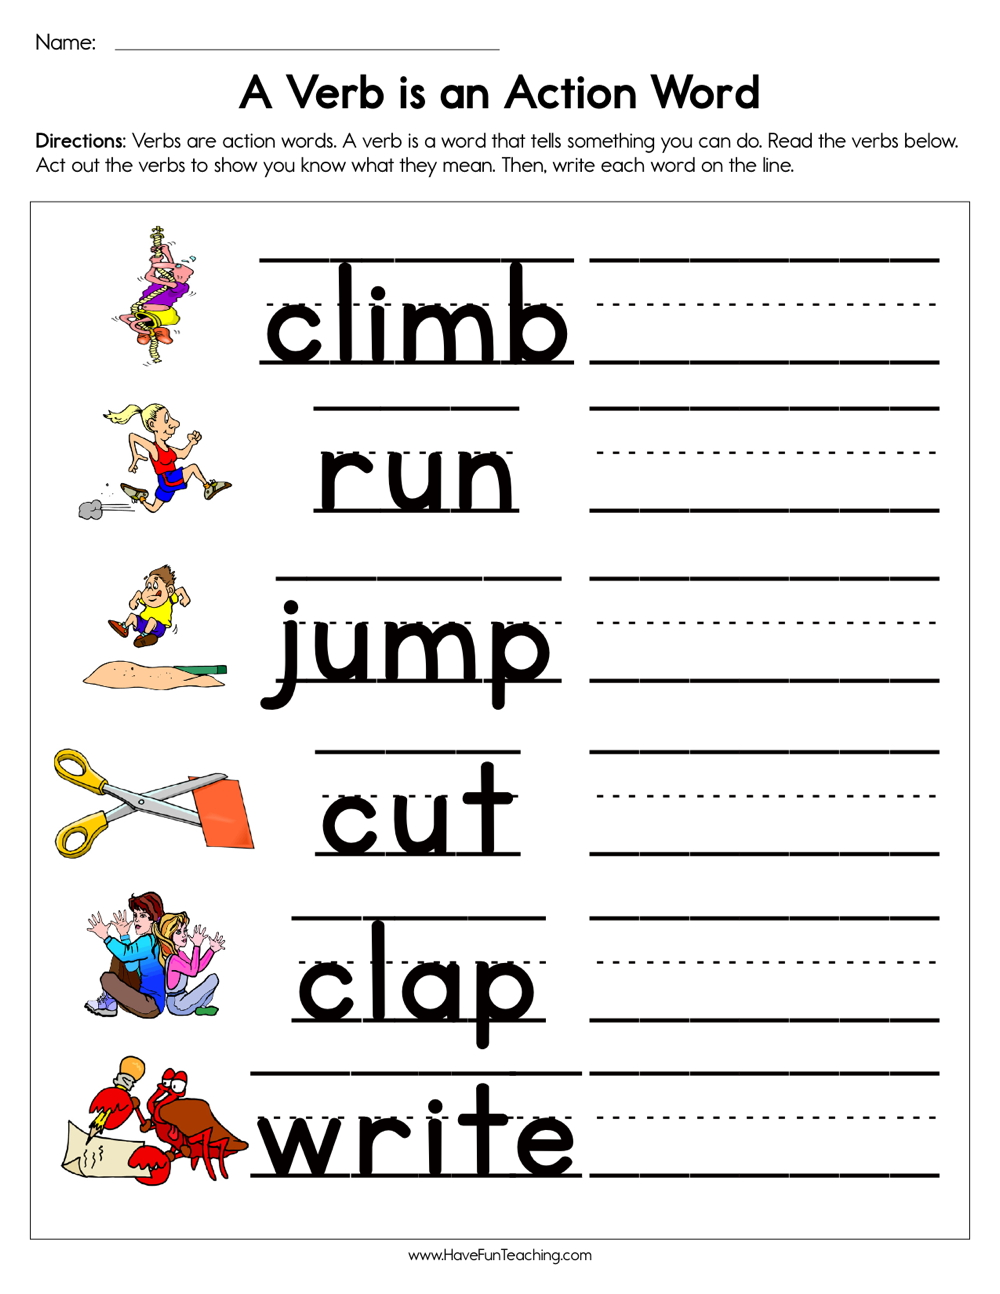 A Verb is an Action Word Worksheet | Have Fun Teaching